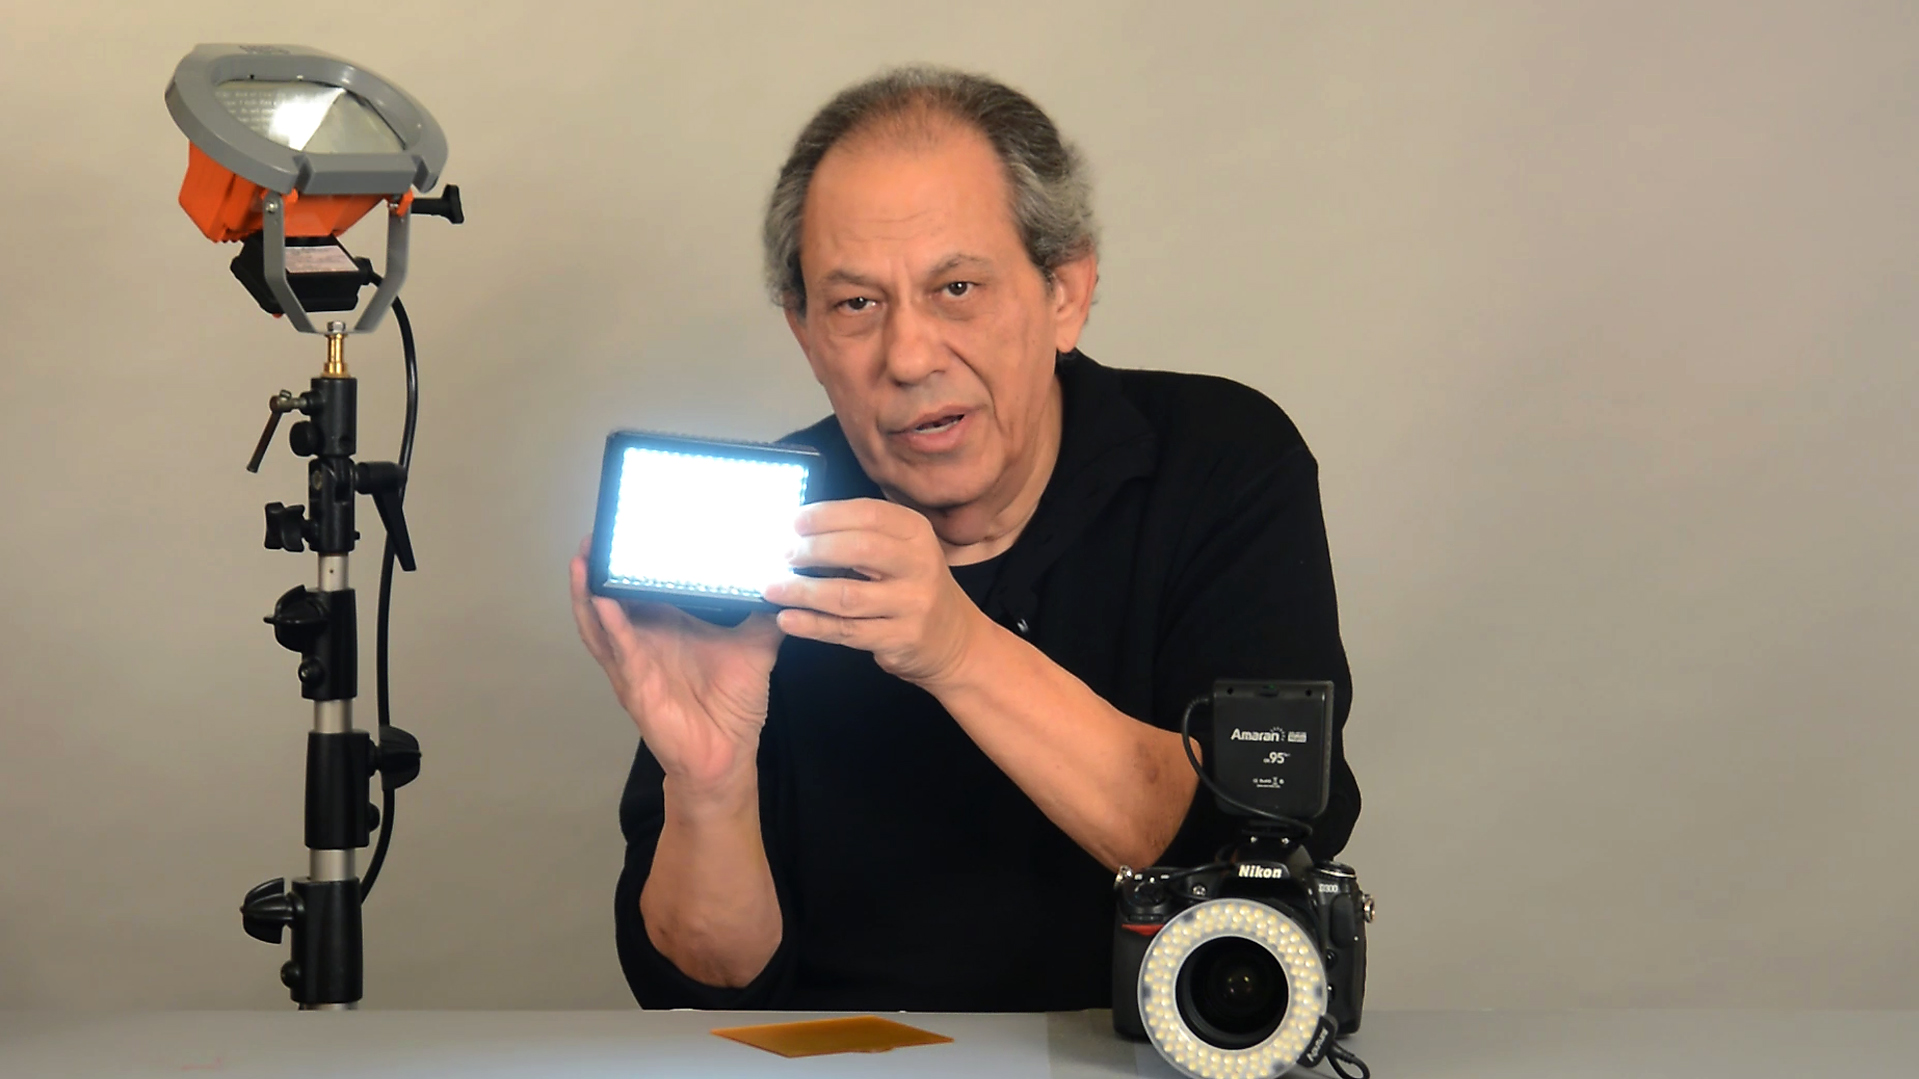 Working With Cheap Lights